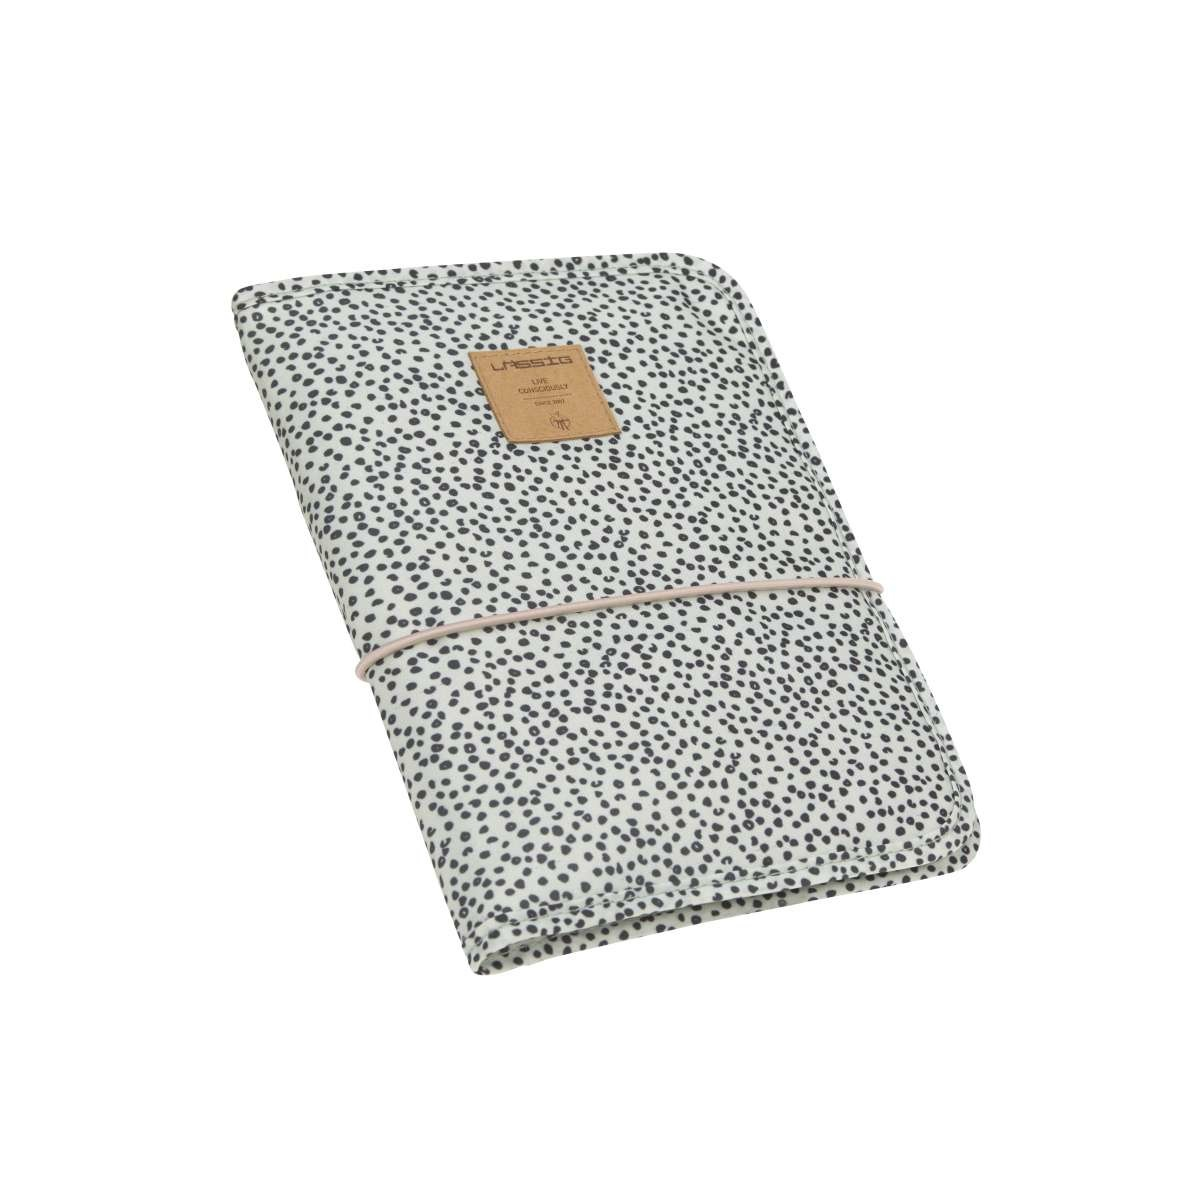 LASSIG LASSIG Diaper Changing Pouch